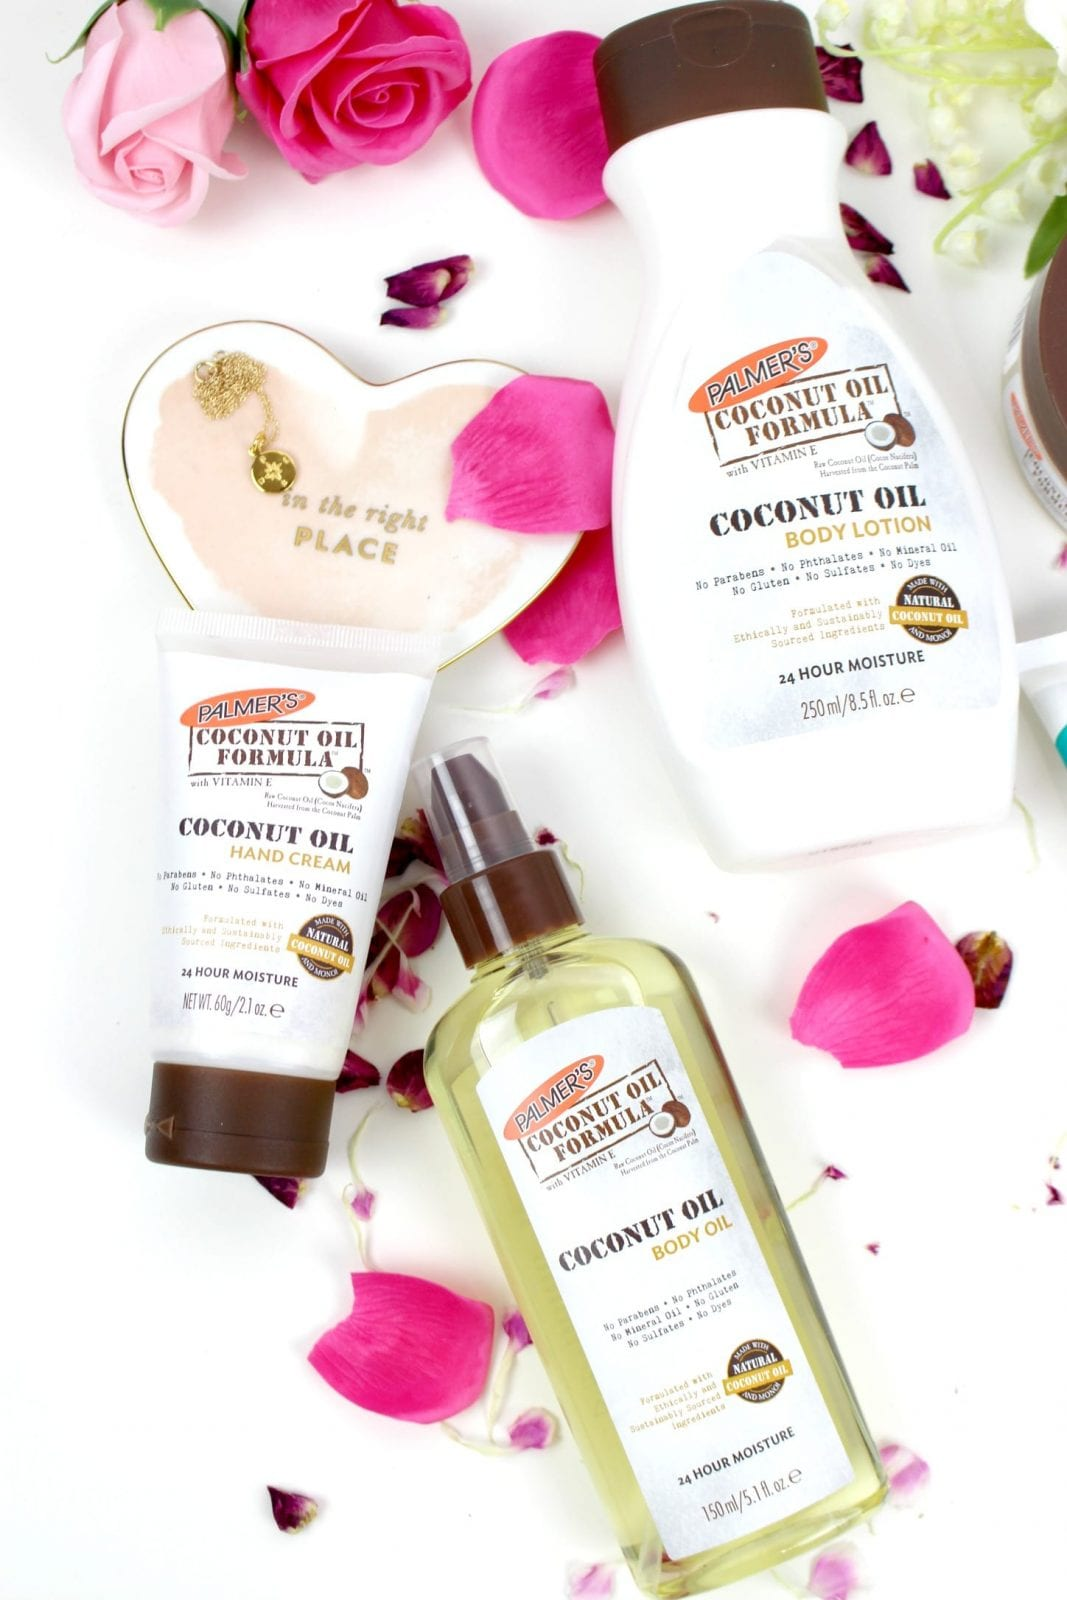 This is a close up of the Palmers Coconut Oil products, surrounded by pink rose petals.